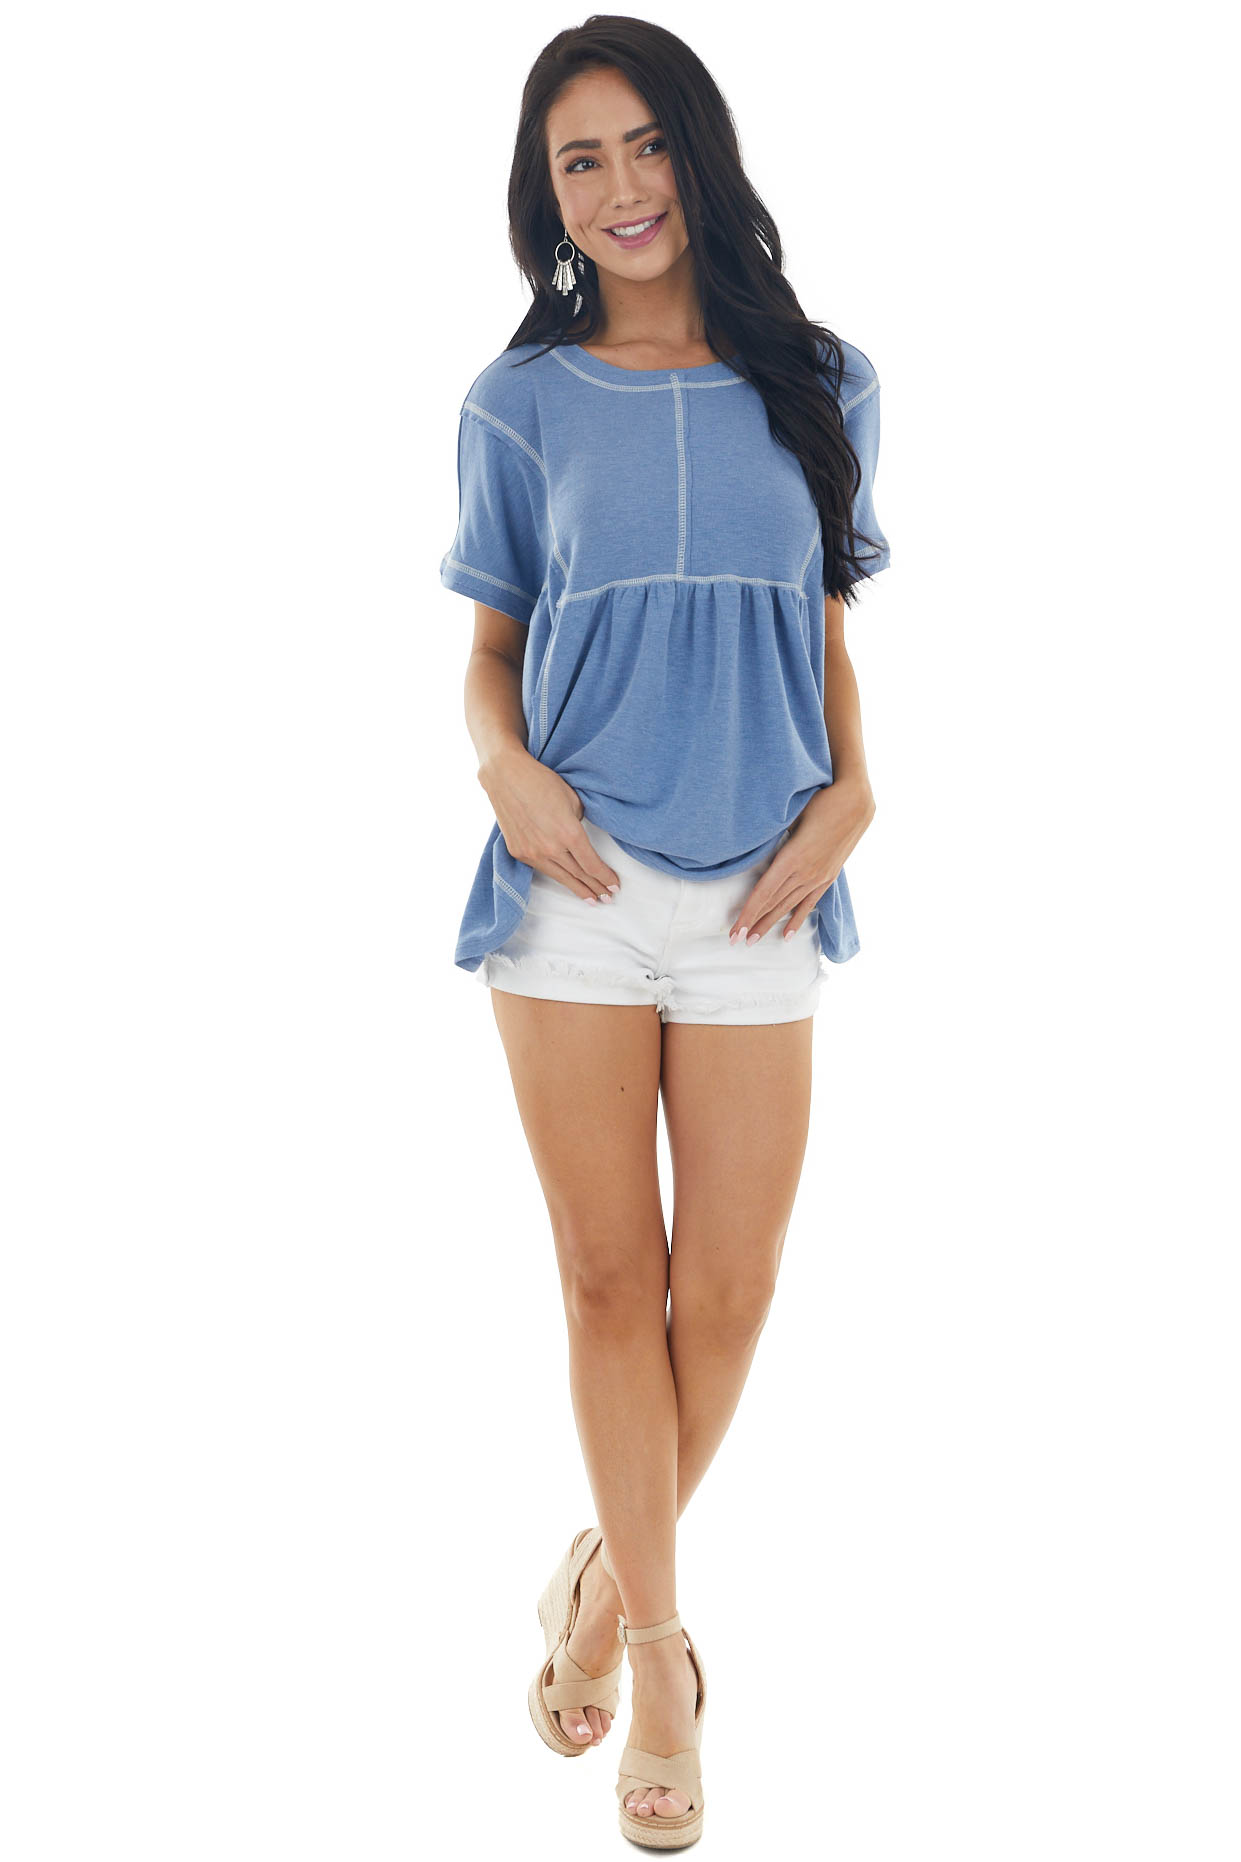 Heathered Blue Short Sleeve Knit Top with Exposed Stitching